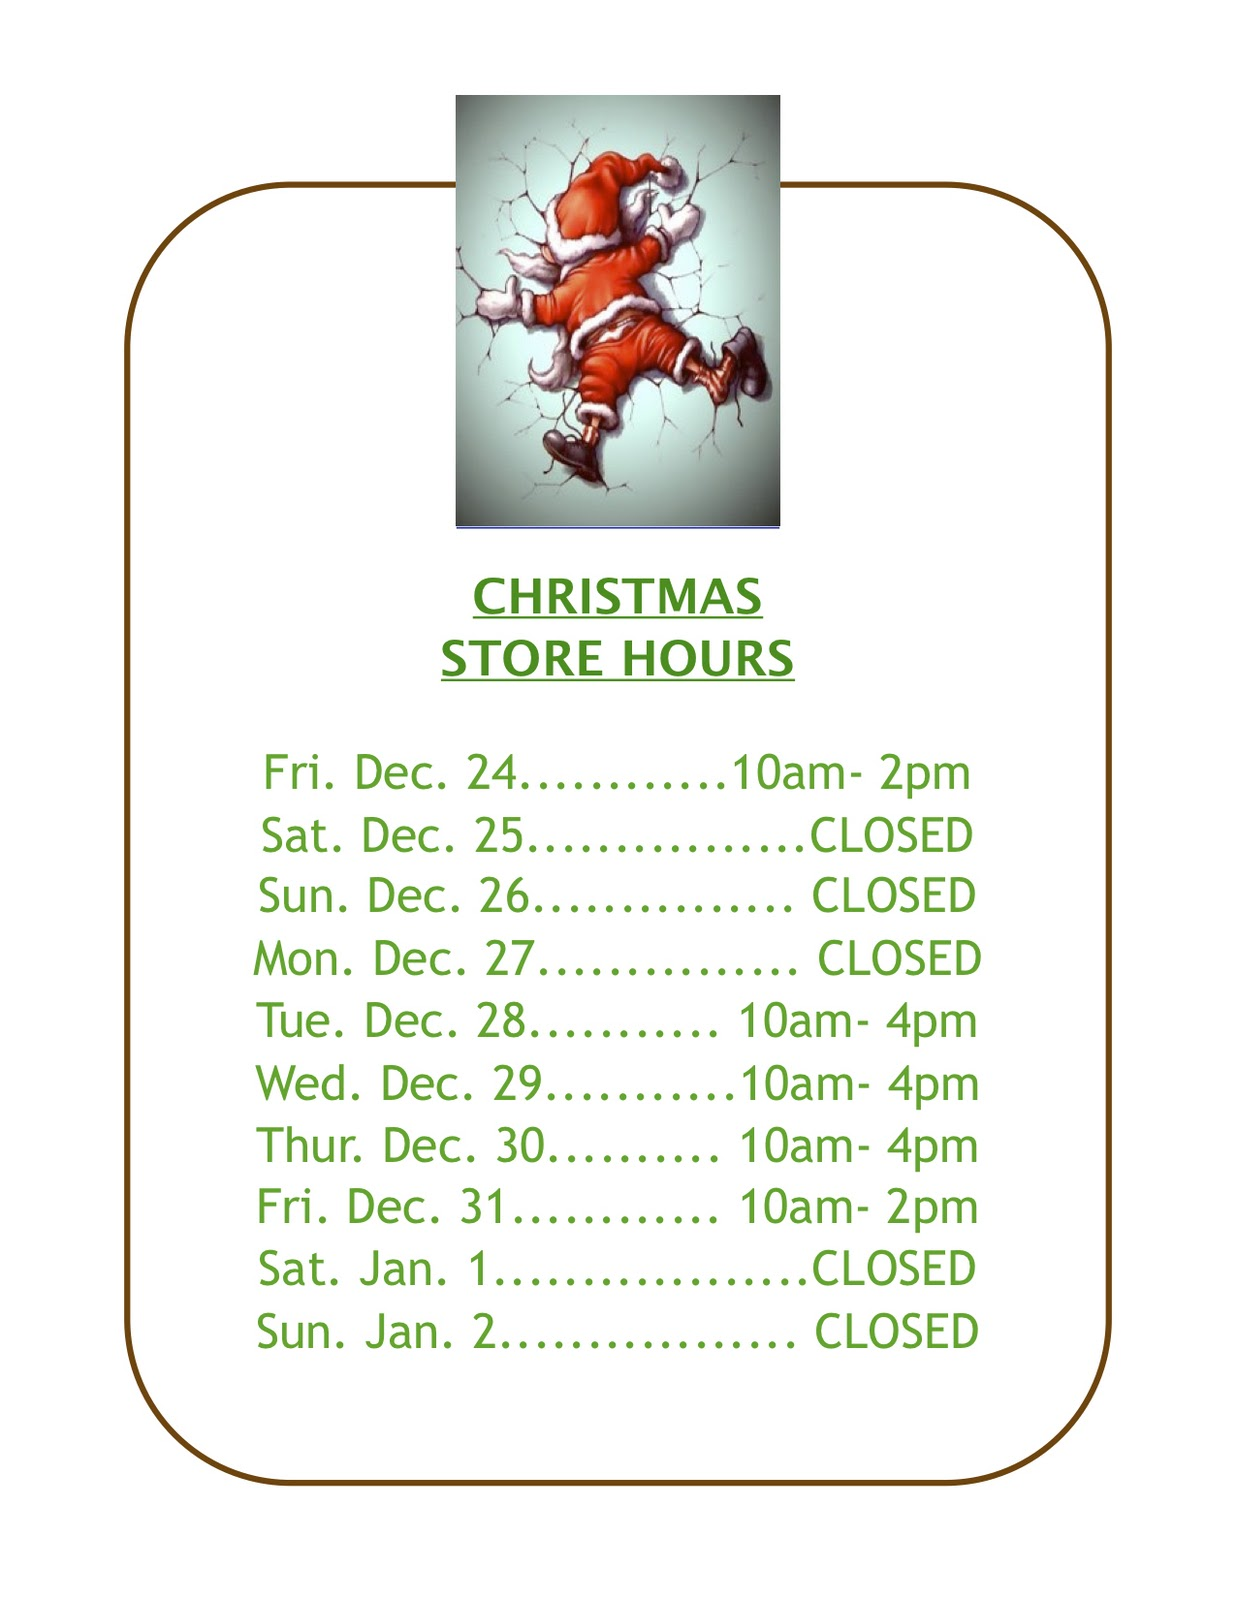 christmas hours for best buy